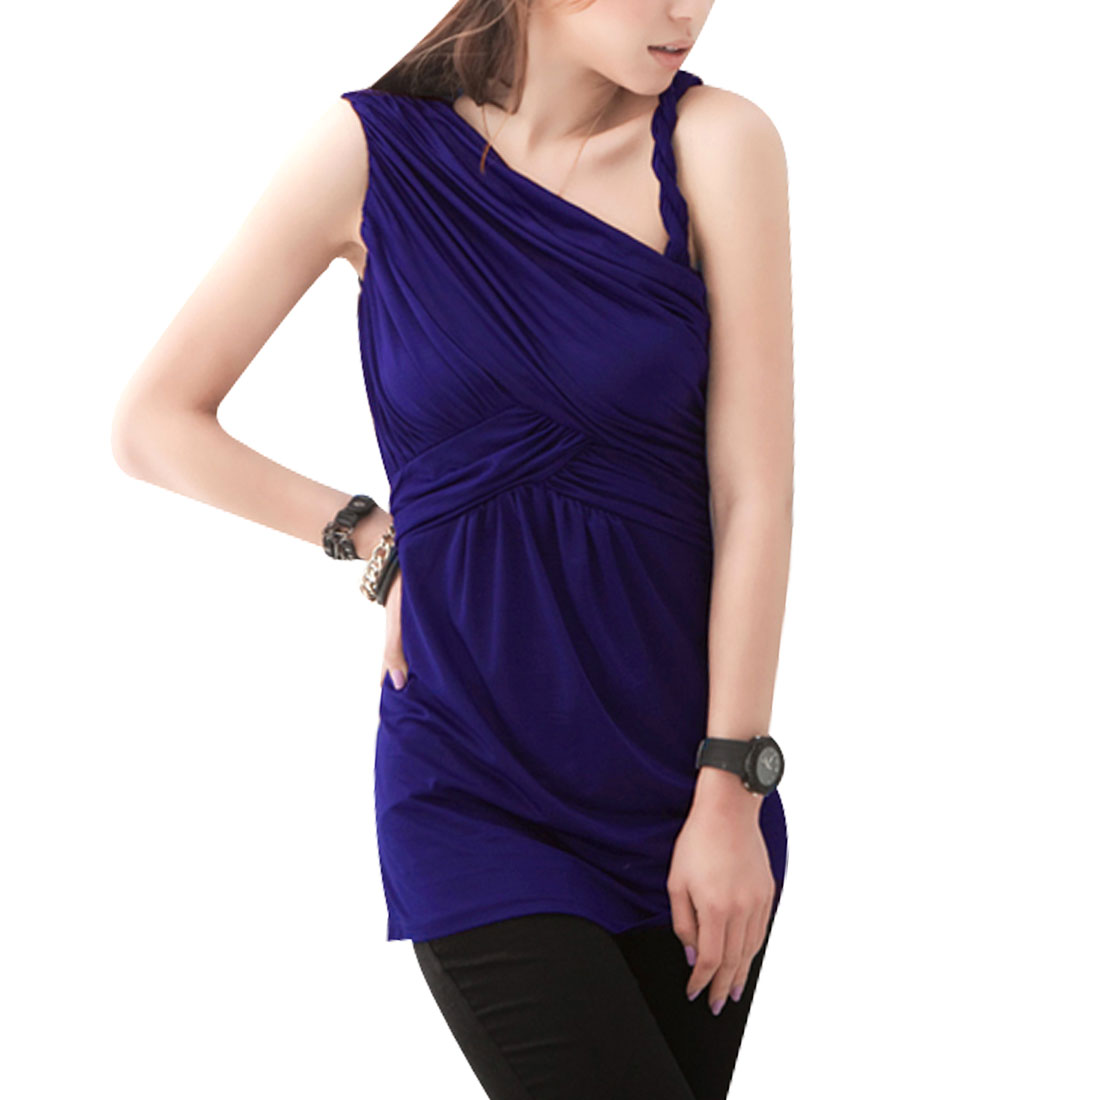 Pollover Slanting Shoulder Ruffled Tunic Shirt Purple XS for Ladies